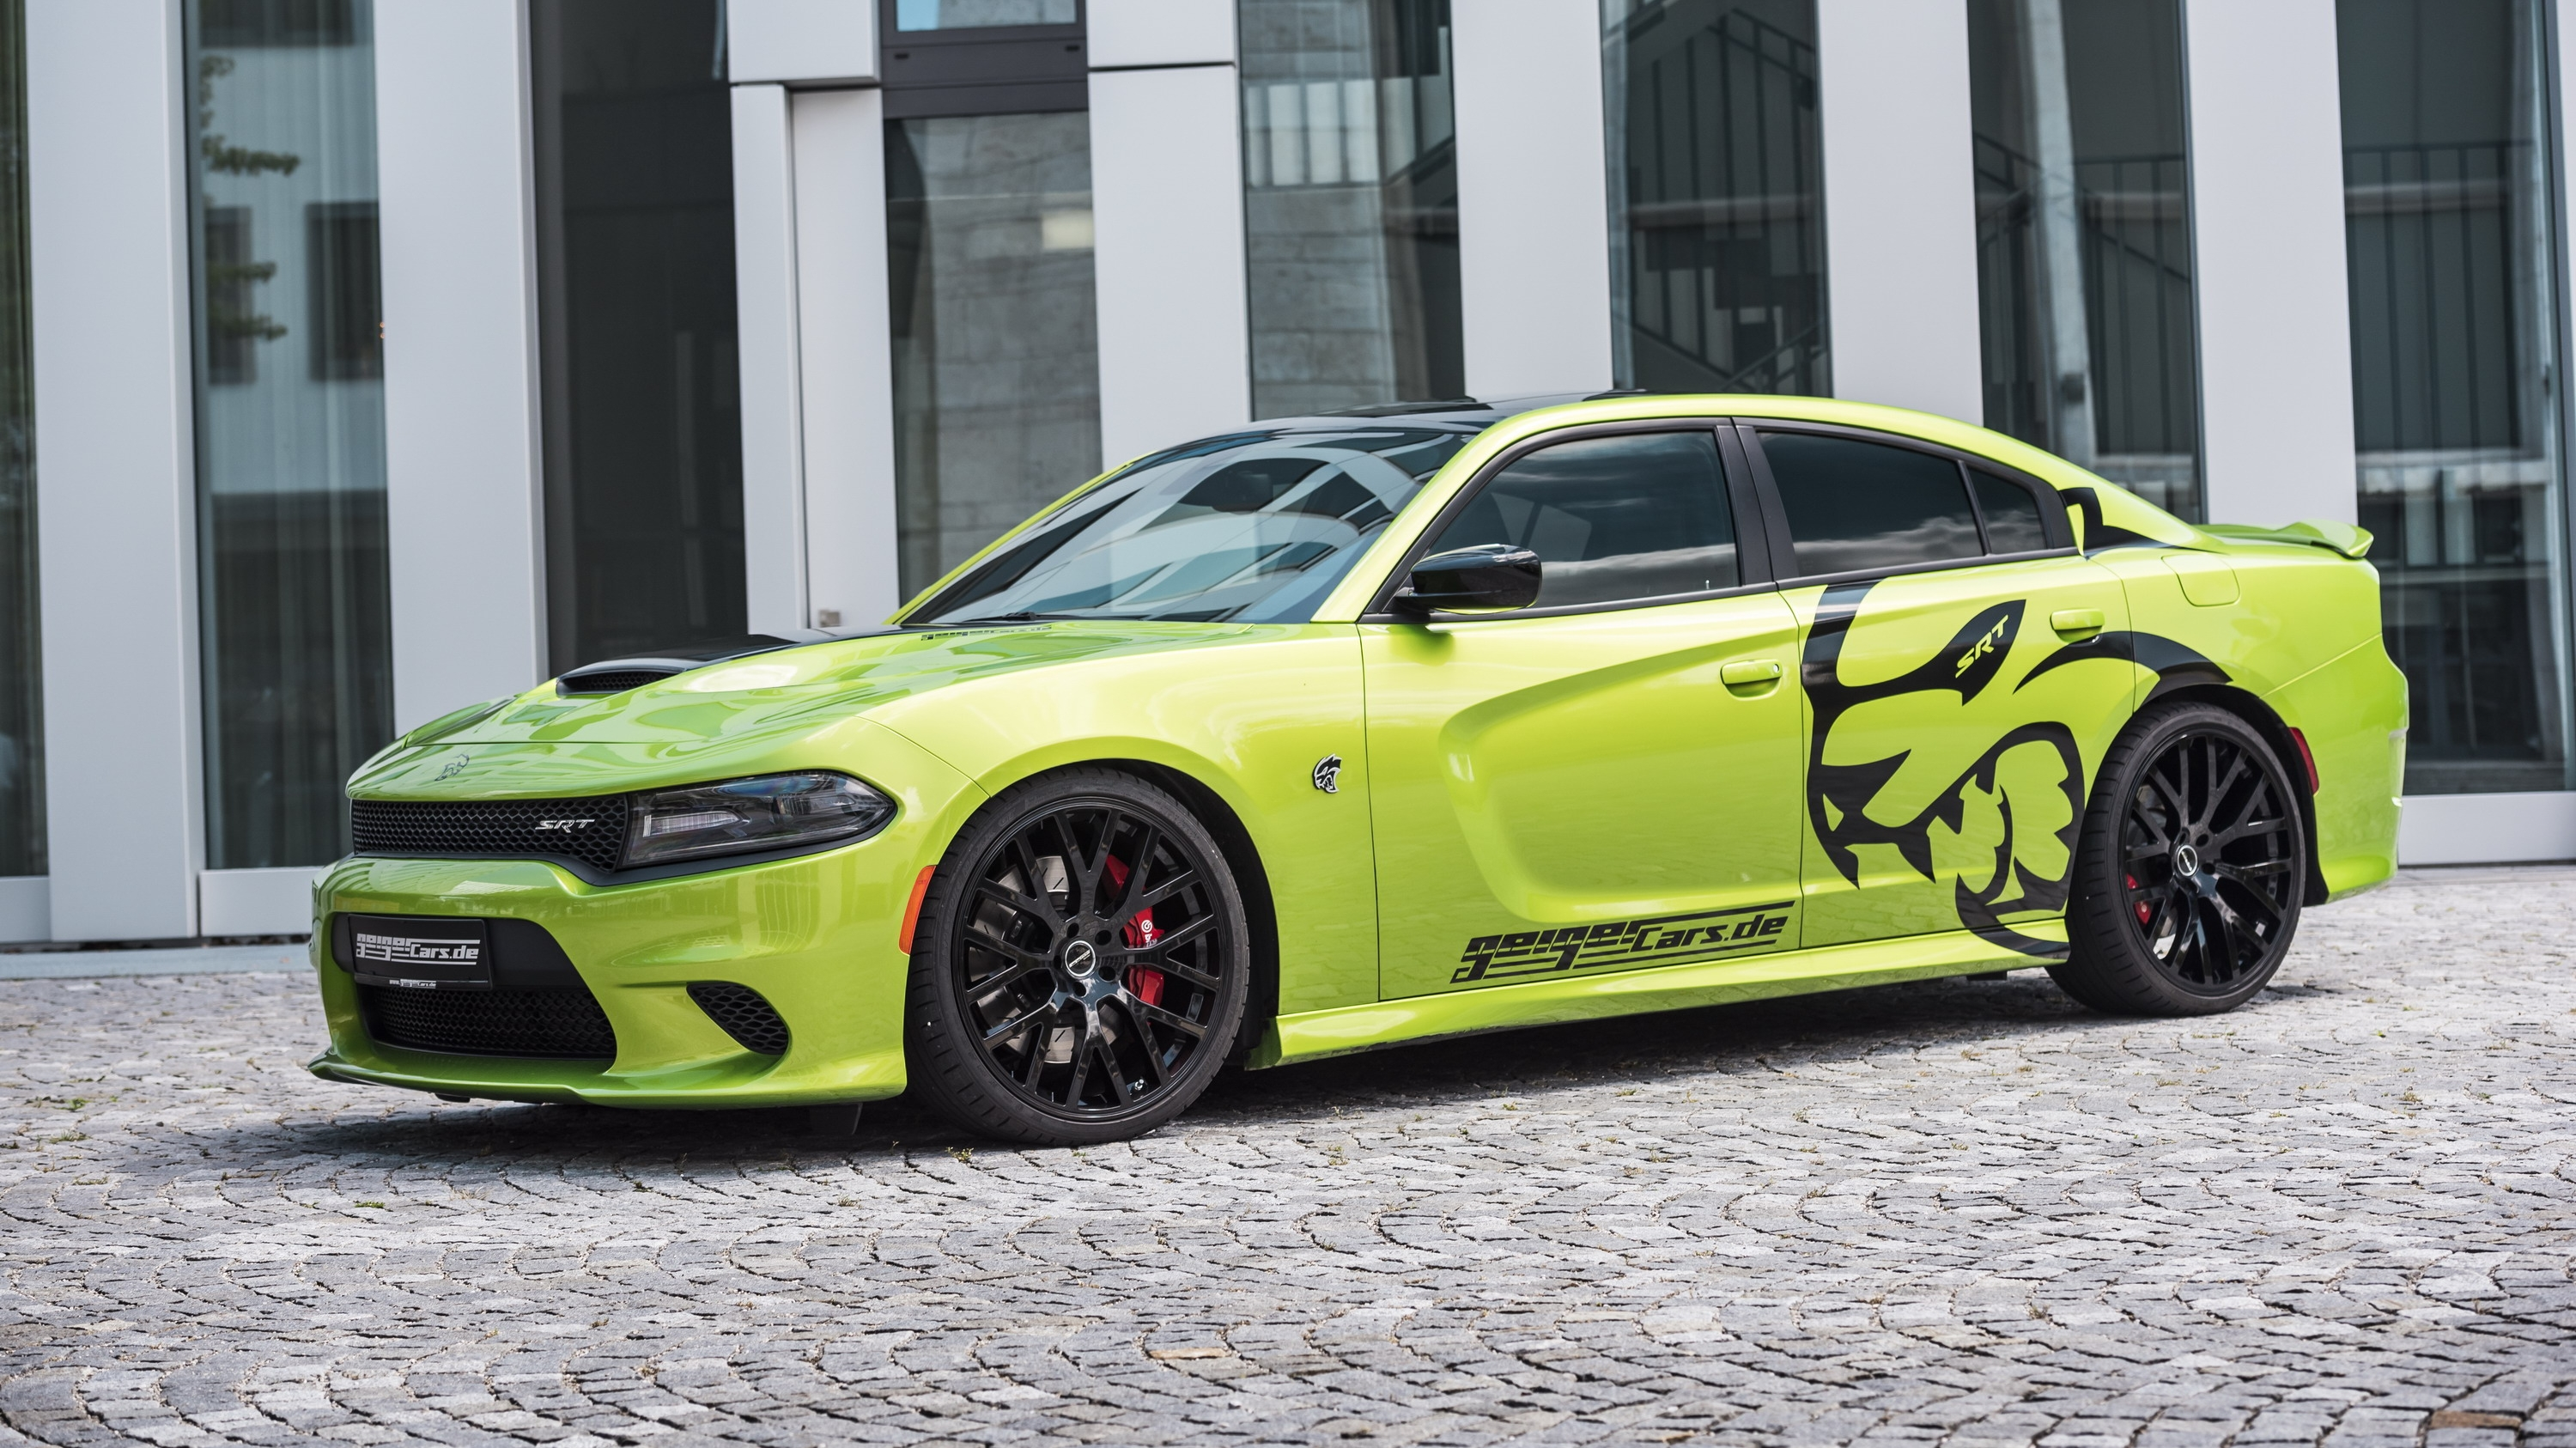 2016 dodge charger srt hellcat by geiger cars review top. Black Bedroom Furniture Sets. Home Design Ideas